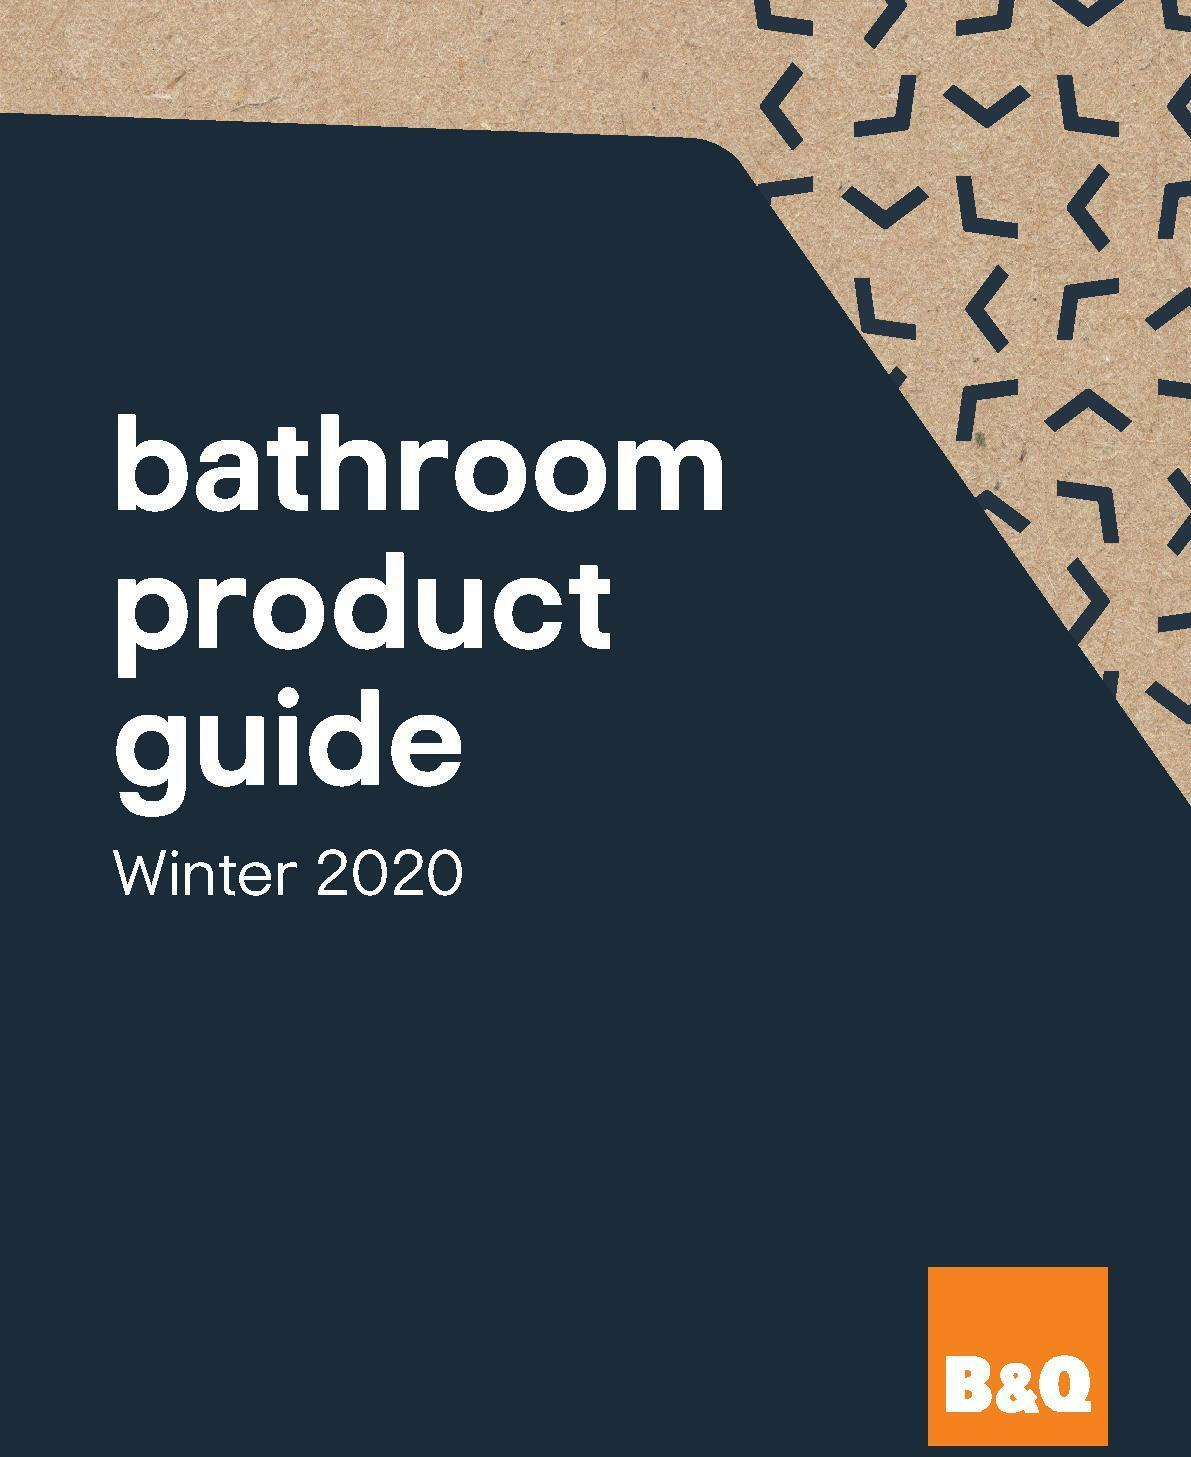 B&Q Bathroom Product Guide Offers from February 7